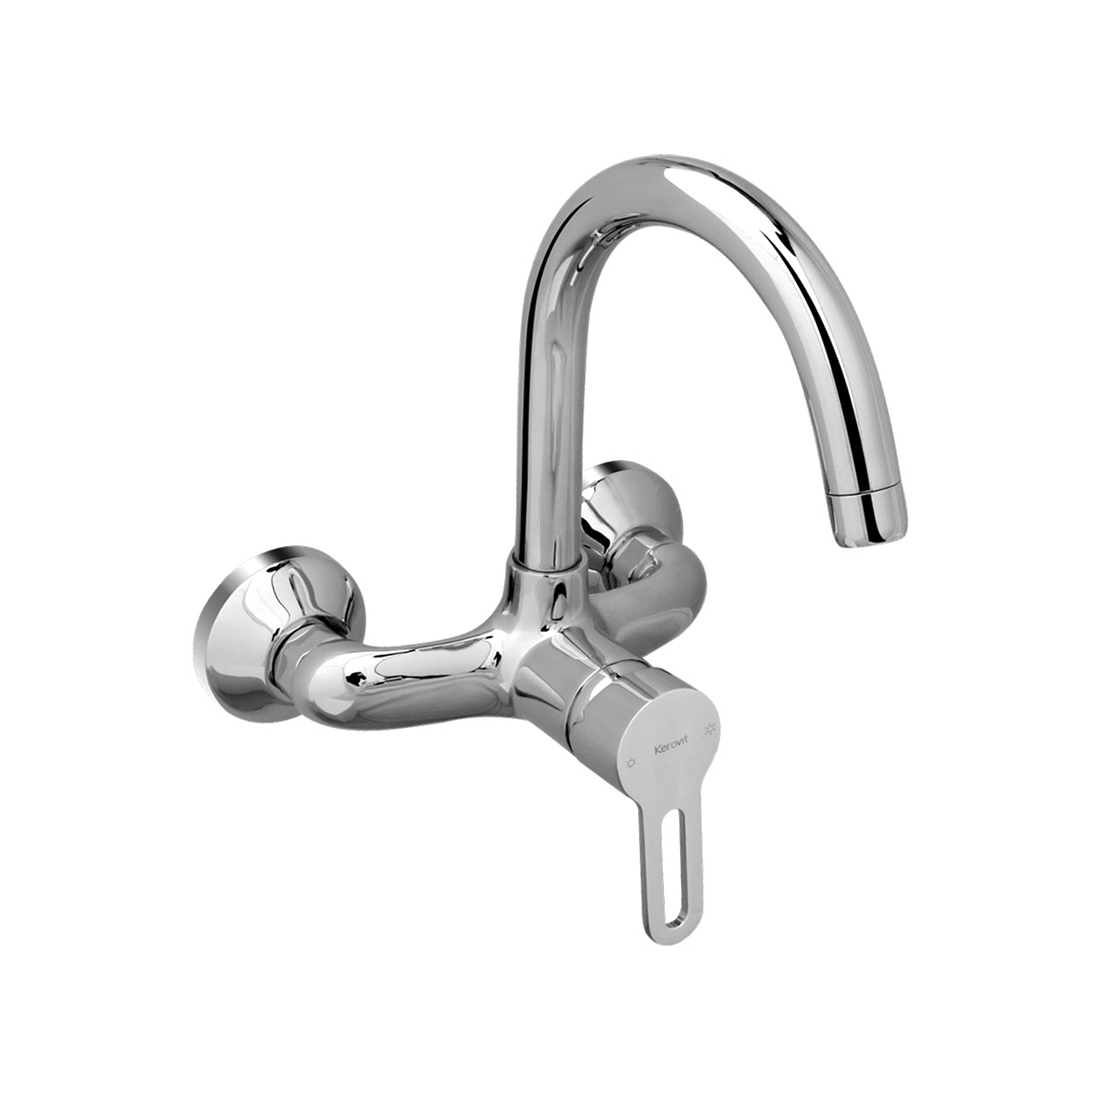 Kerovit Curve KB1711038 Single Lever Sink Mixer With Swivel Spout and Flange